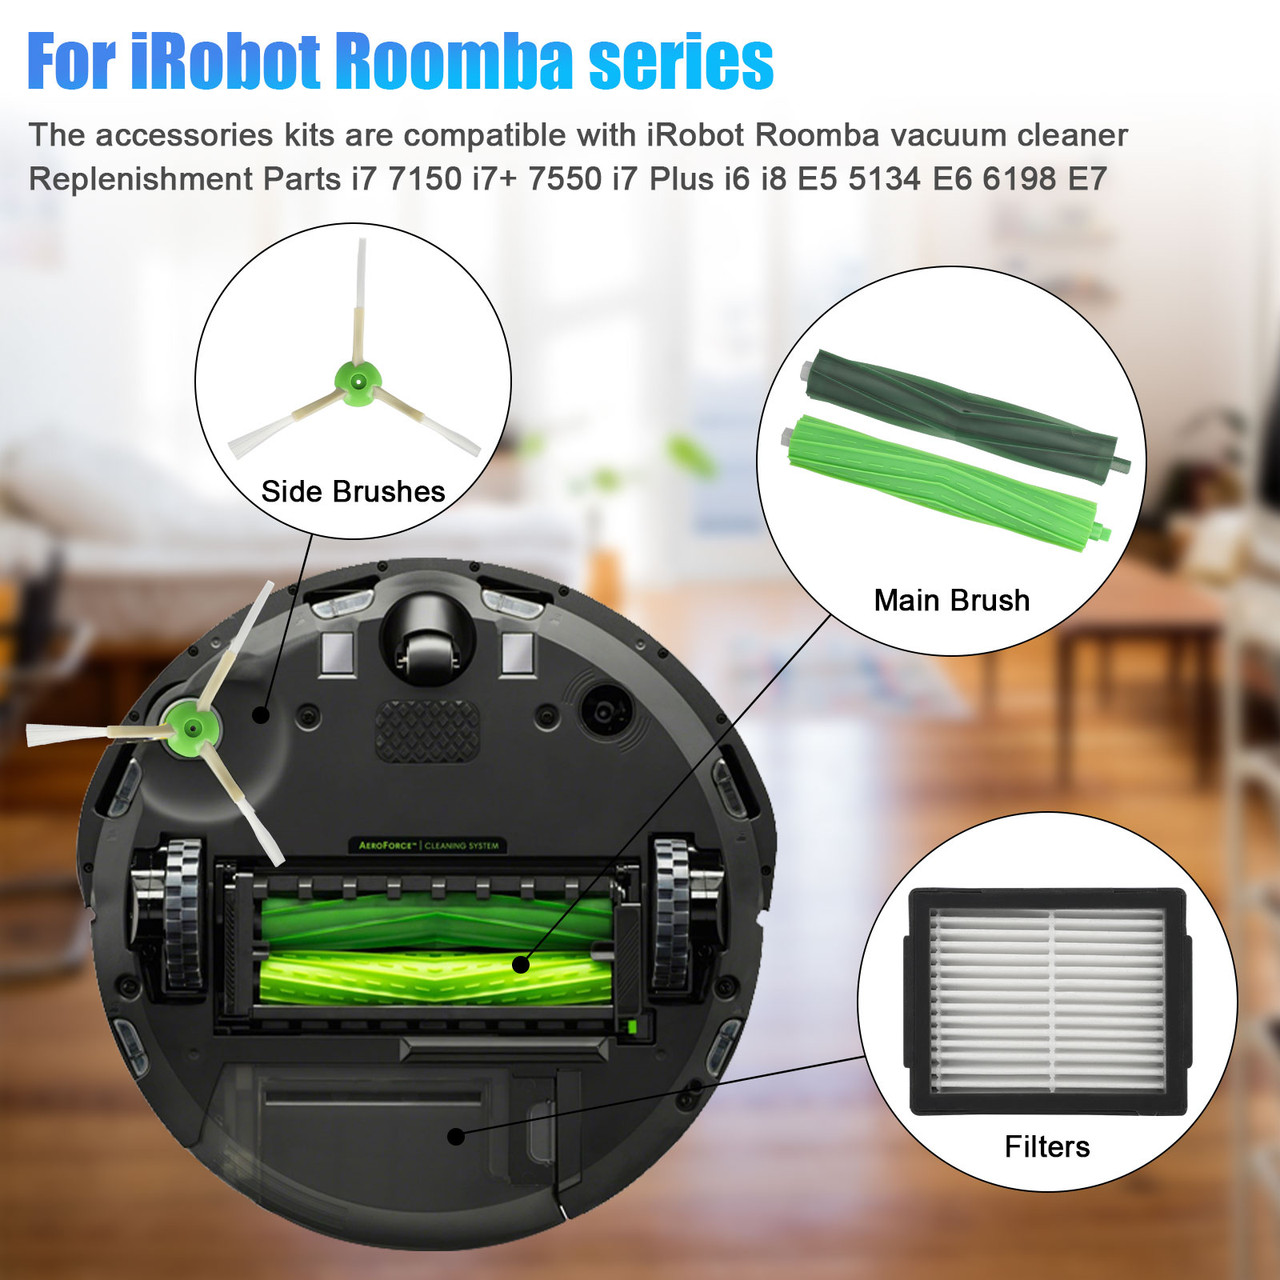 i3 i3 Plus E5 E6 Vacuum,Including 2 Set of Multi-Surface Rubber Brushes /& 10 High-Efficiency HEPA Filters /& 10 Edge-Sweeping Side Brushes i7 i7 Amyehouse Replacement Parts Kit for iRobot Roomba i6